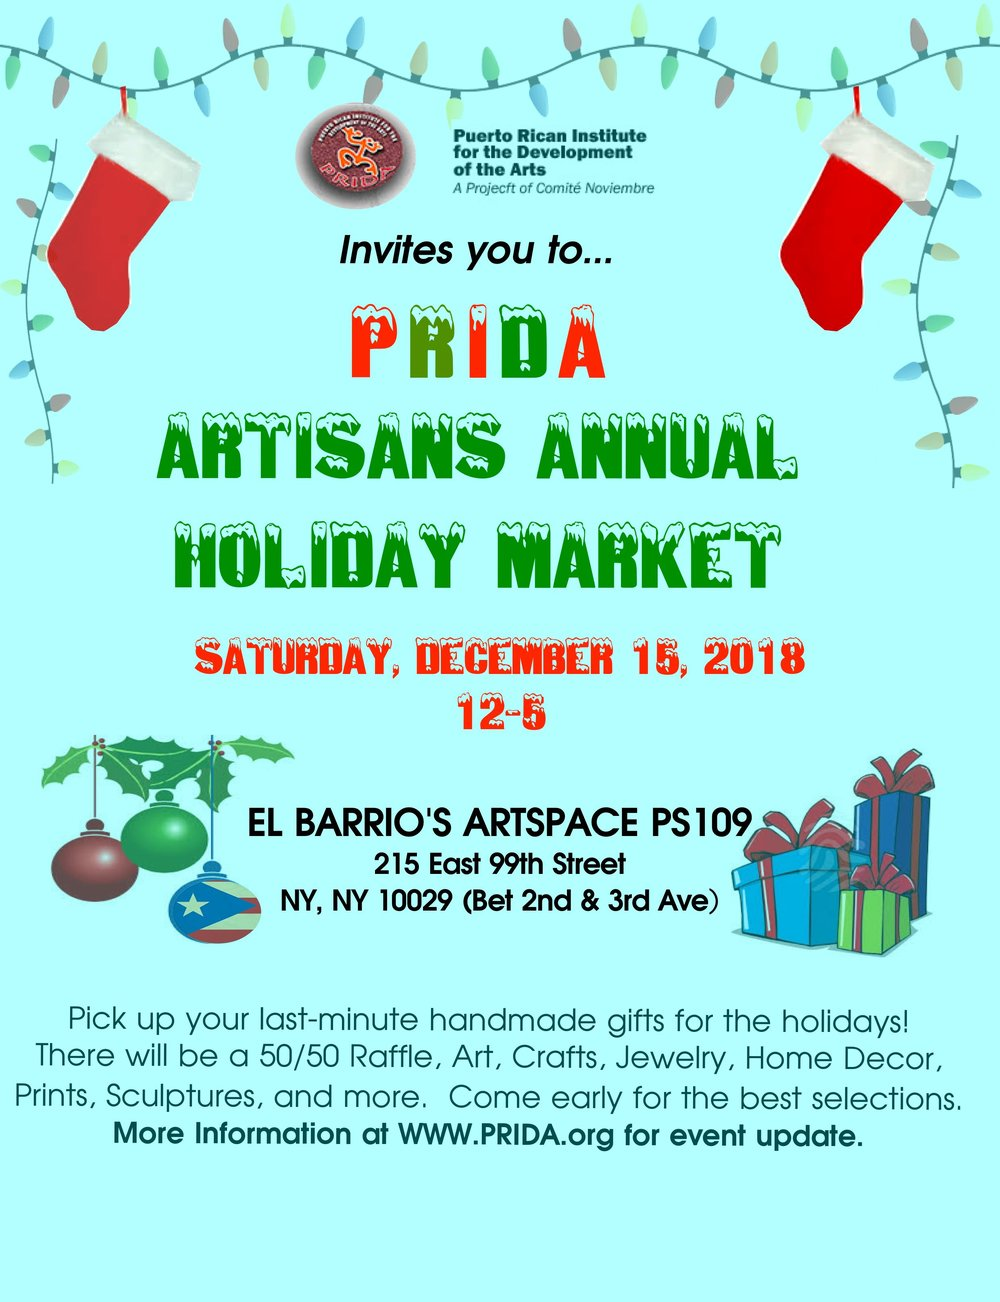 prida artisans annual holiday market